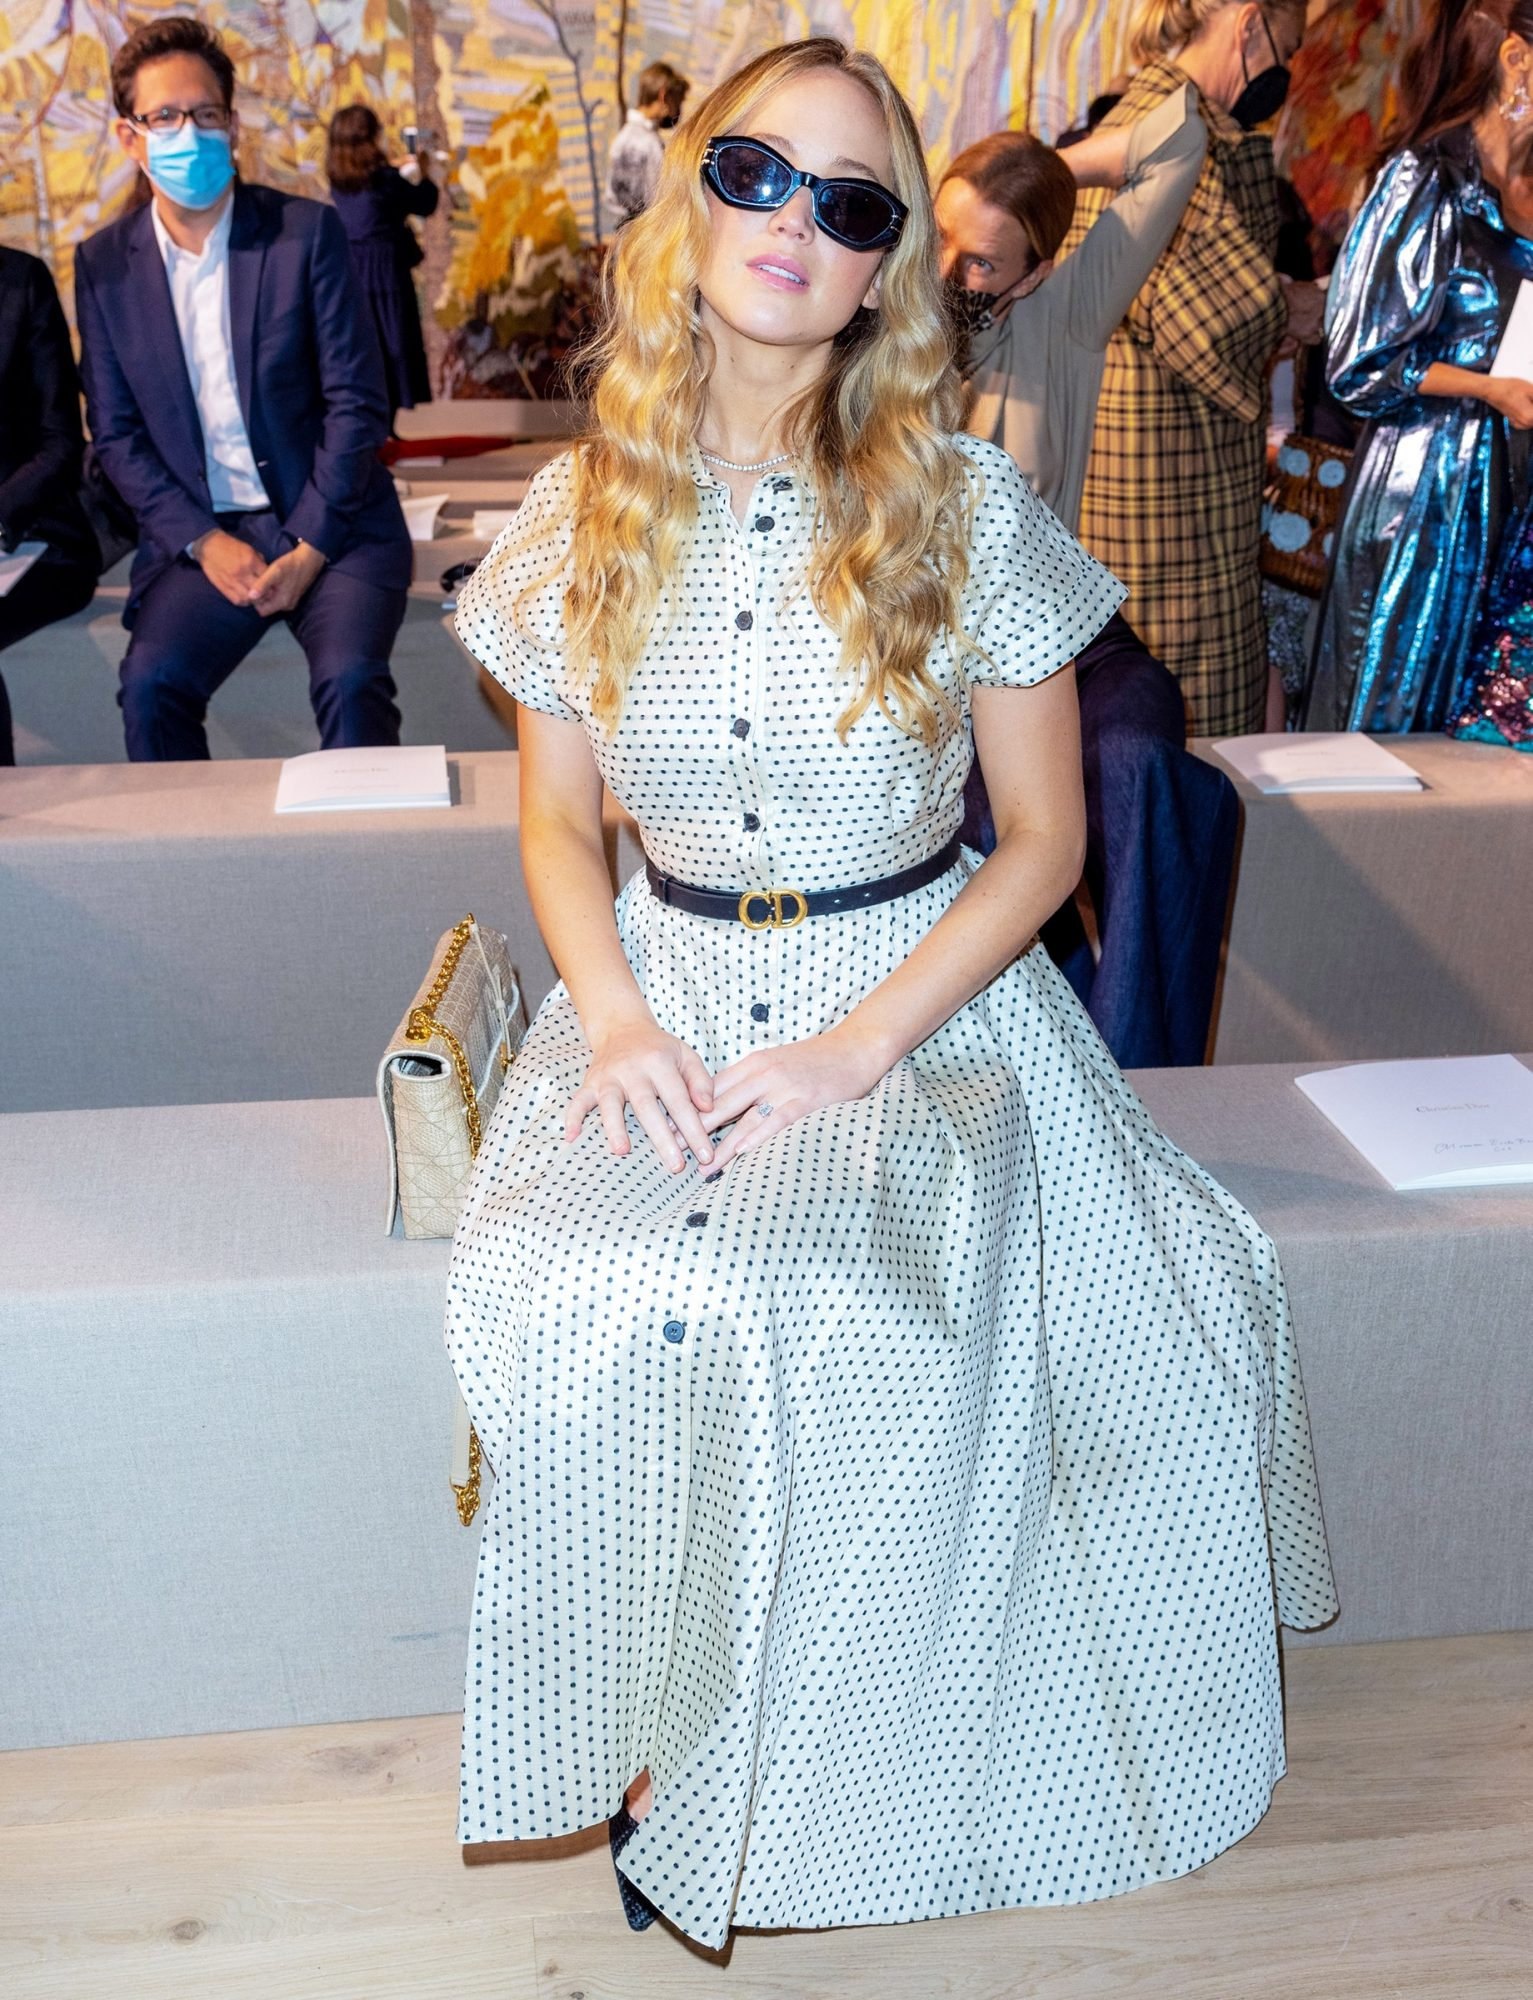 Jennifer Lawrence in the Front Row during the Christian Dior Haute Couture Fall/Winter 2021/2022 show as part of Paris Fashion Week in Paris, France, on July 05, 2021.